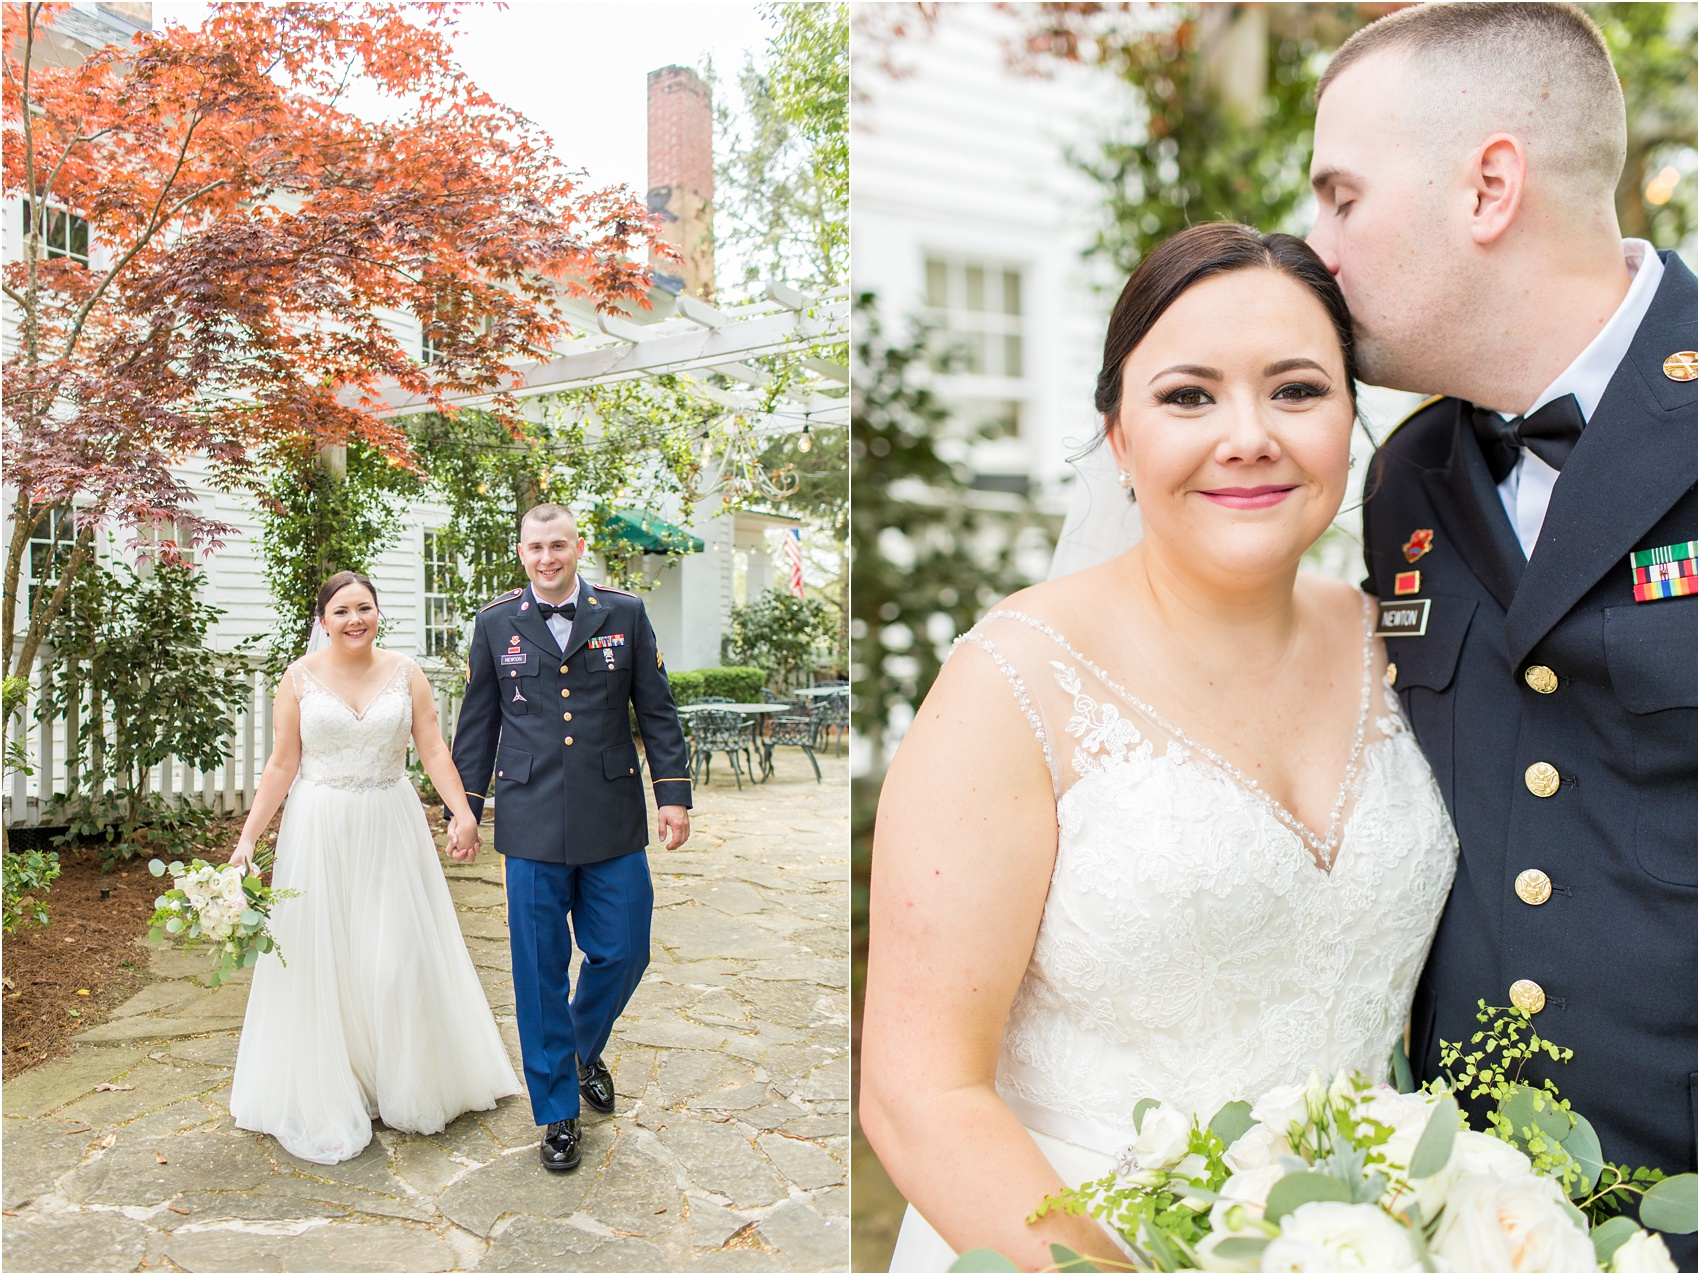 Savannah Eve Photography- Newton Wedding- Blog-48.jpg